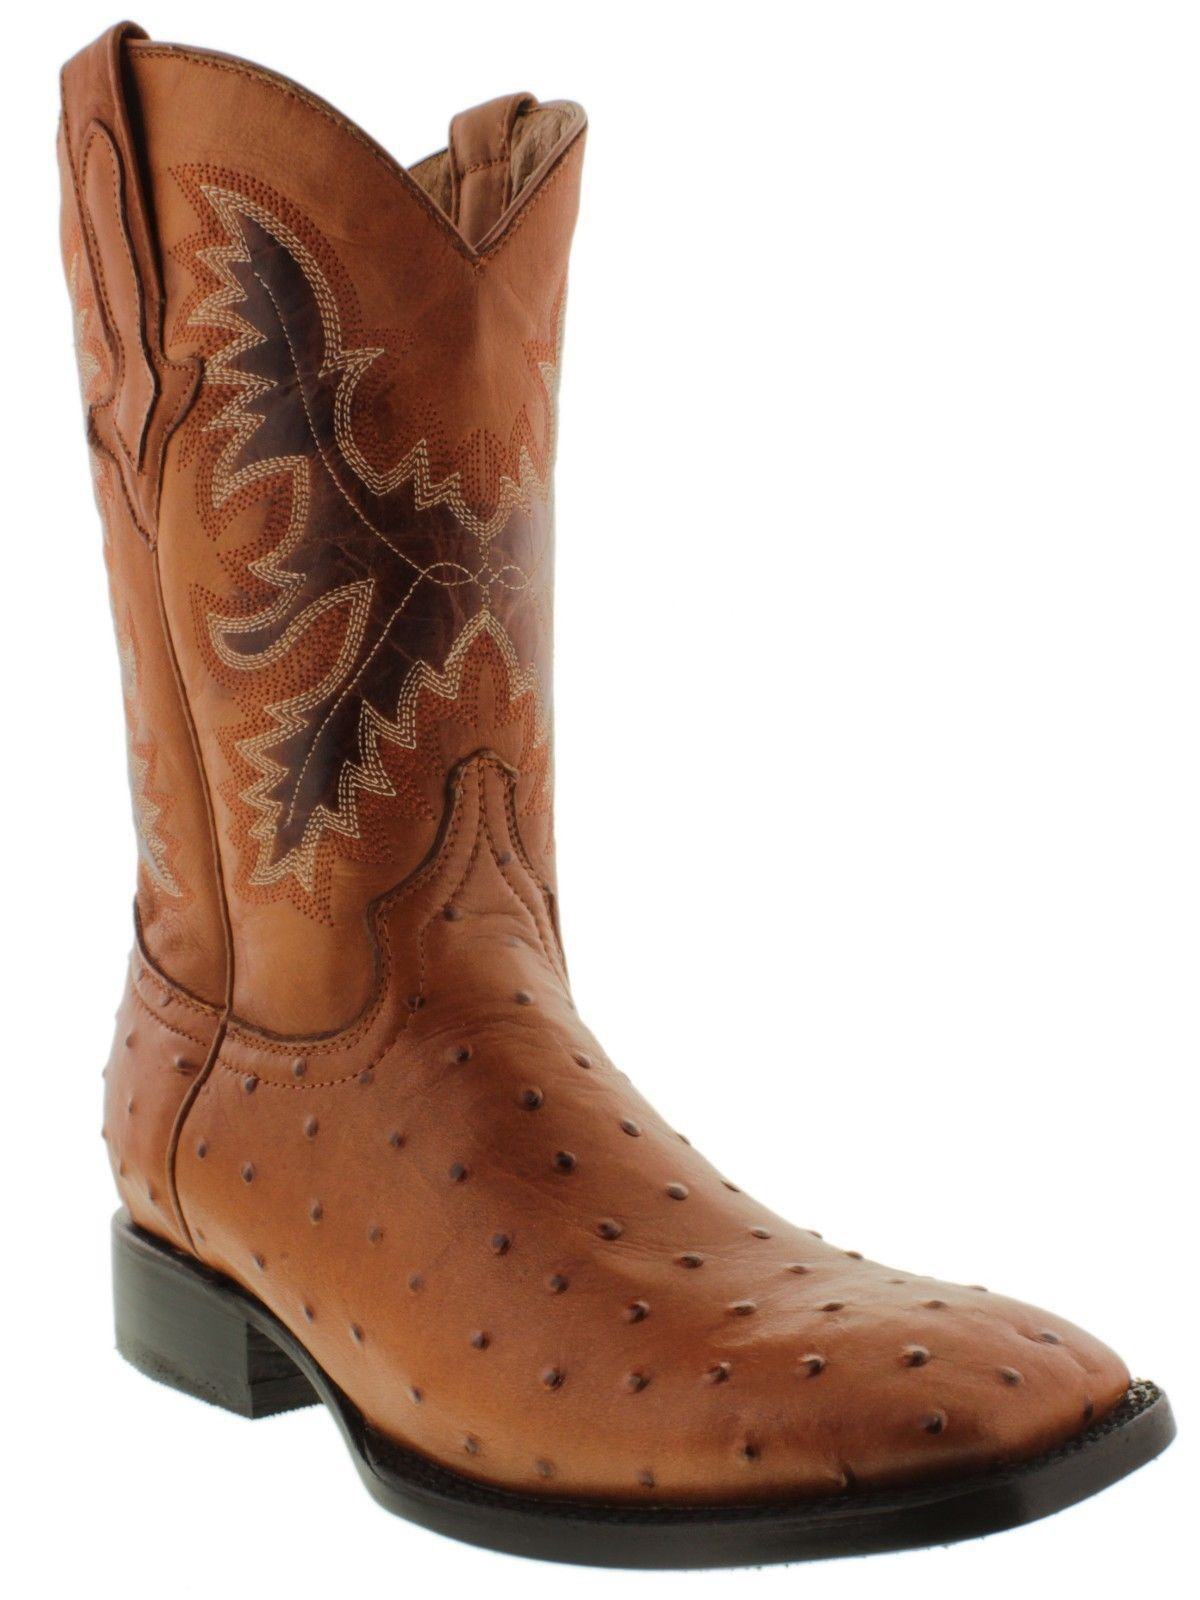 Mens Cognac Western Square Toe Boots Ostrich Pattern Leather Cowboy